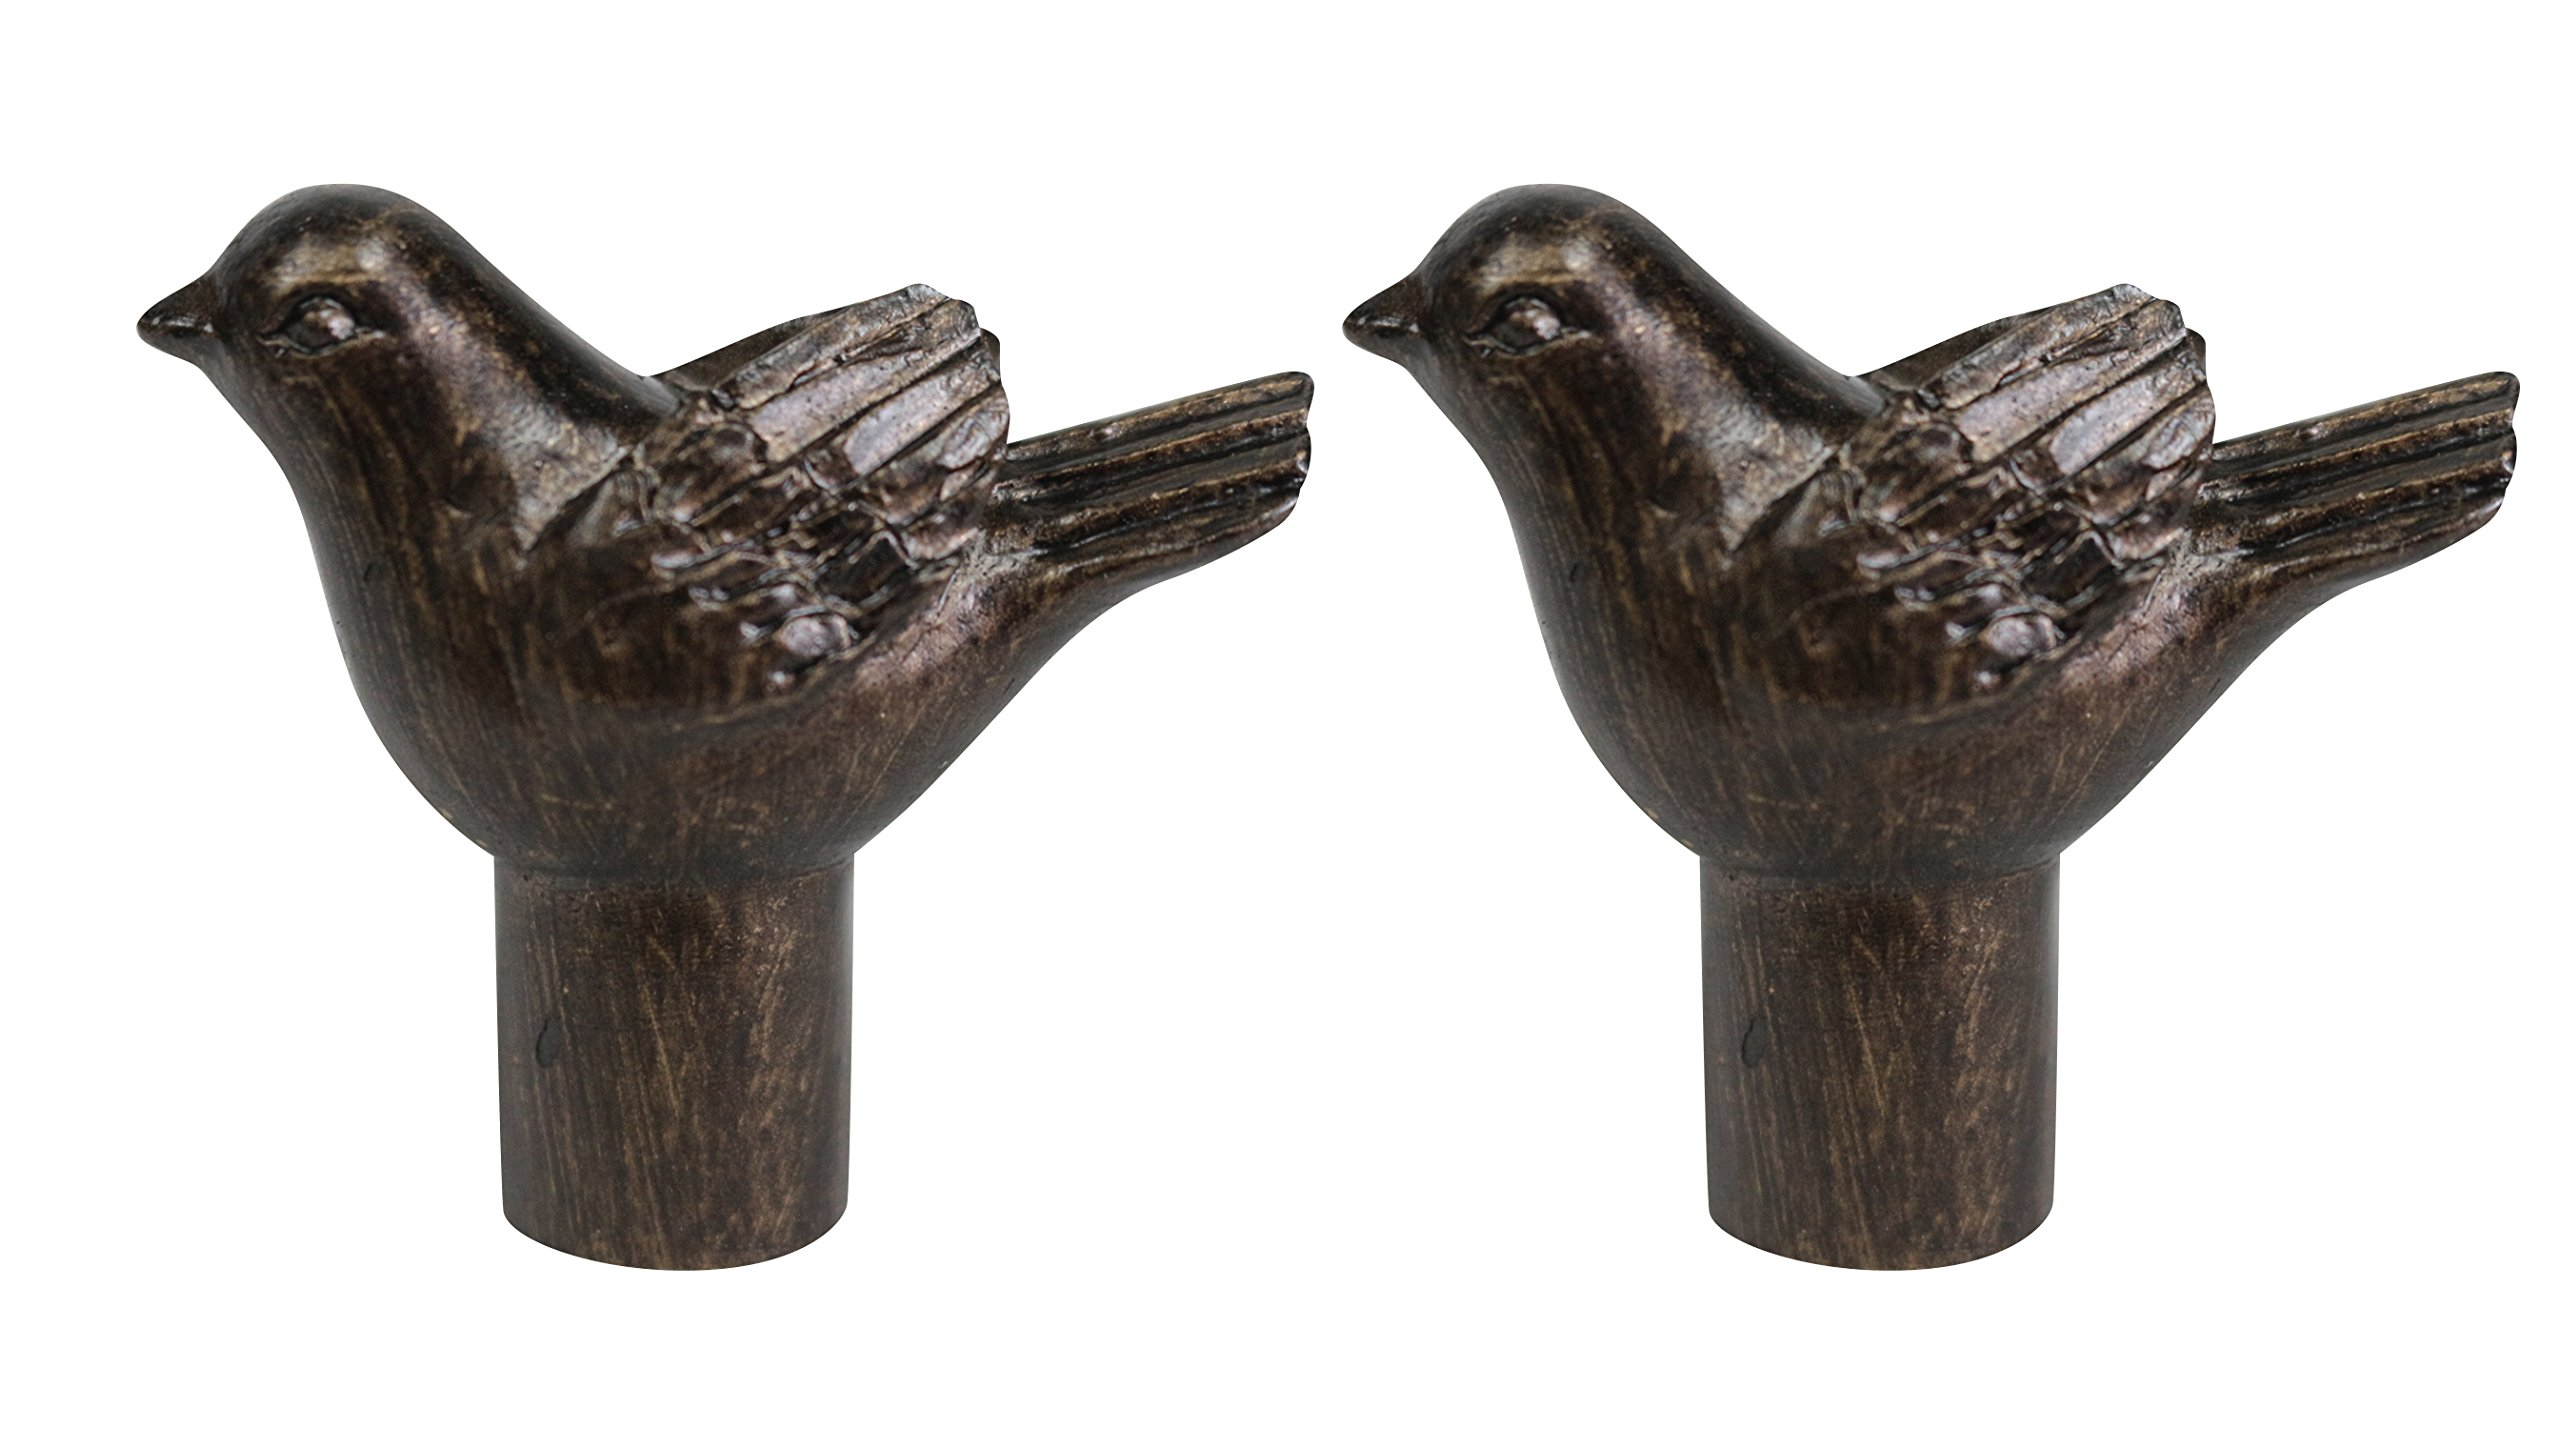 Urbanest Set of 2 Bird Lamp Finials, 1 3/4-inch Tall, Antique Bronze